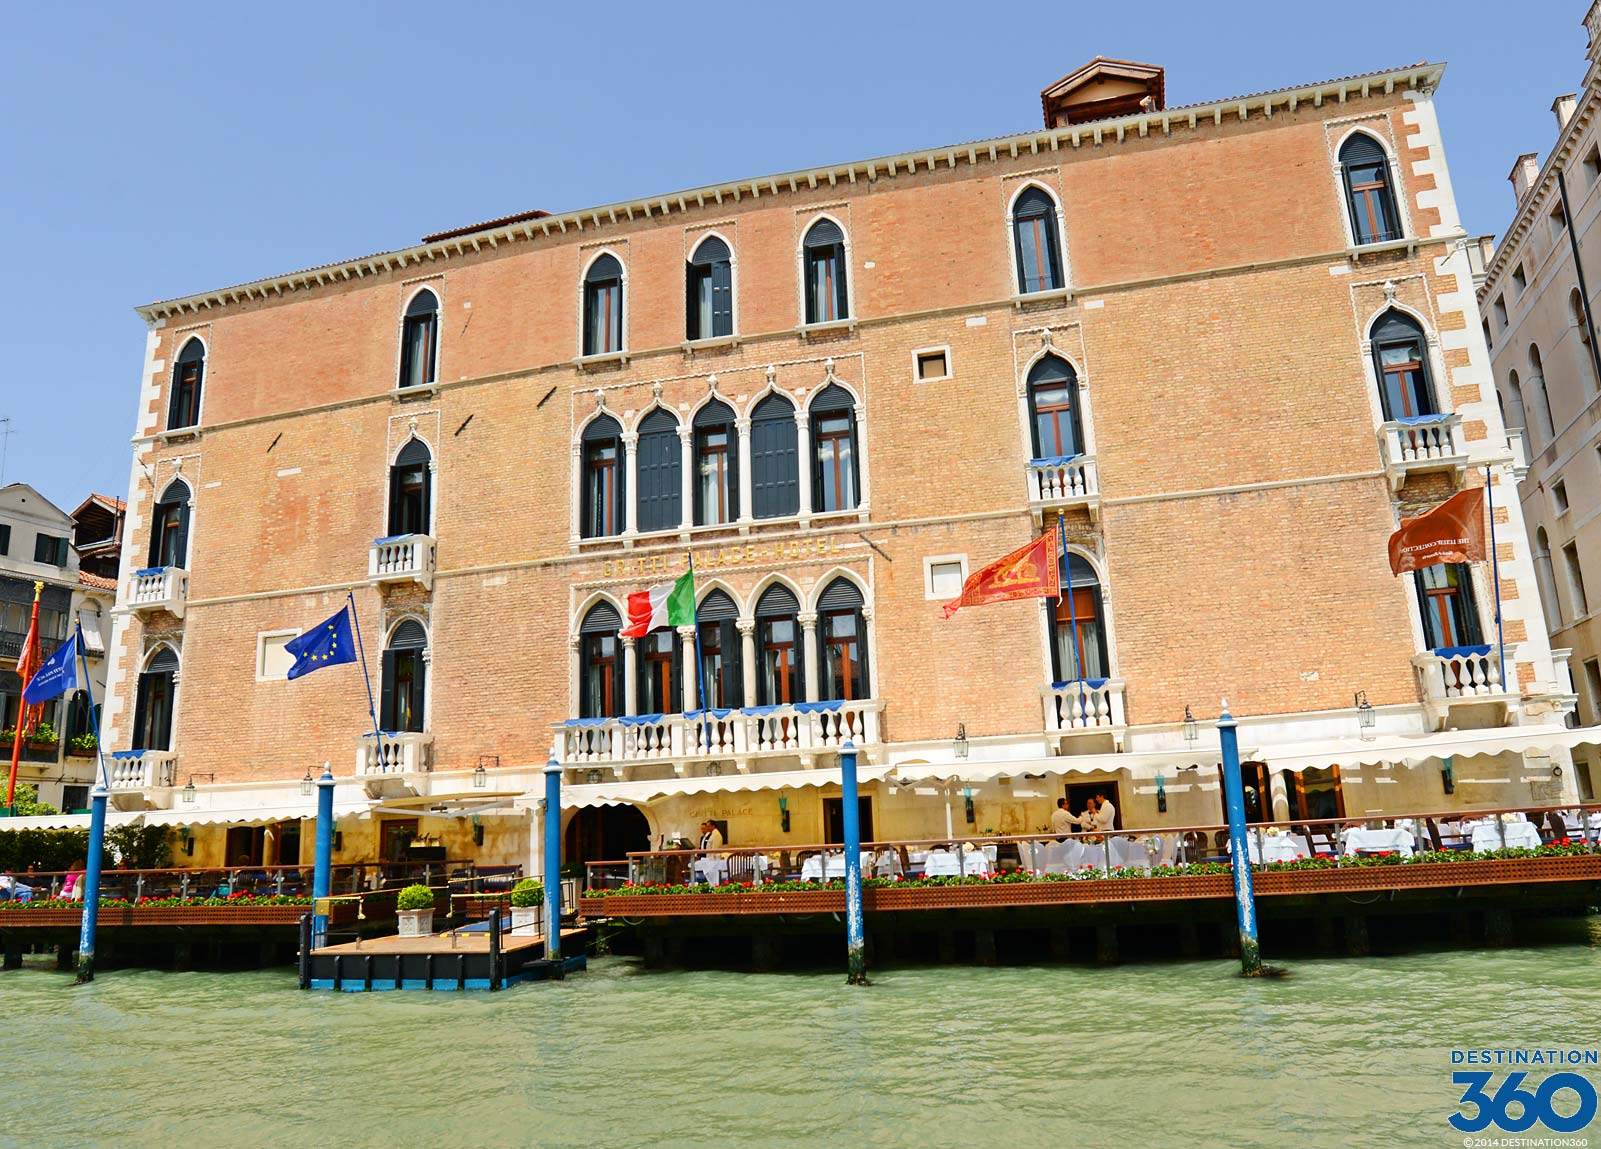 Luxury hotels in venice 4 star hotels in venice italy for Luxury hotel accommodation